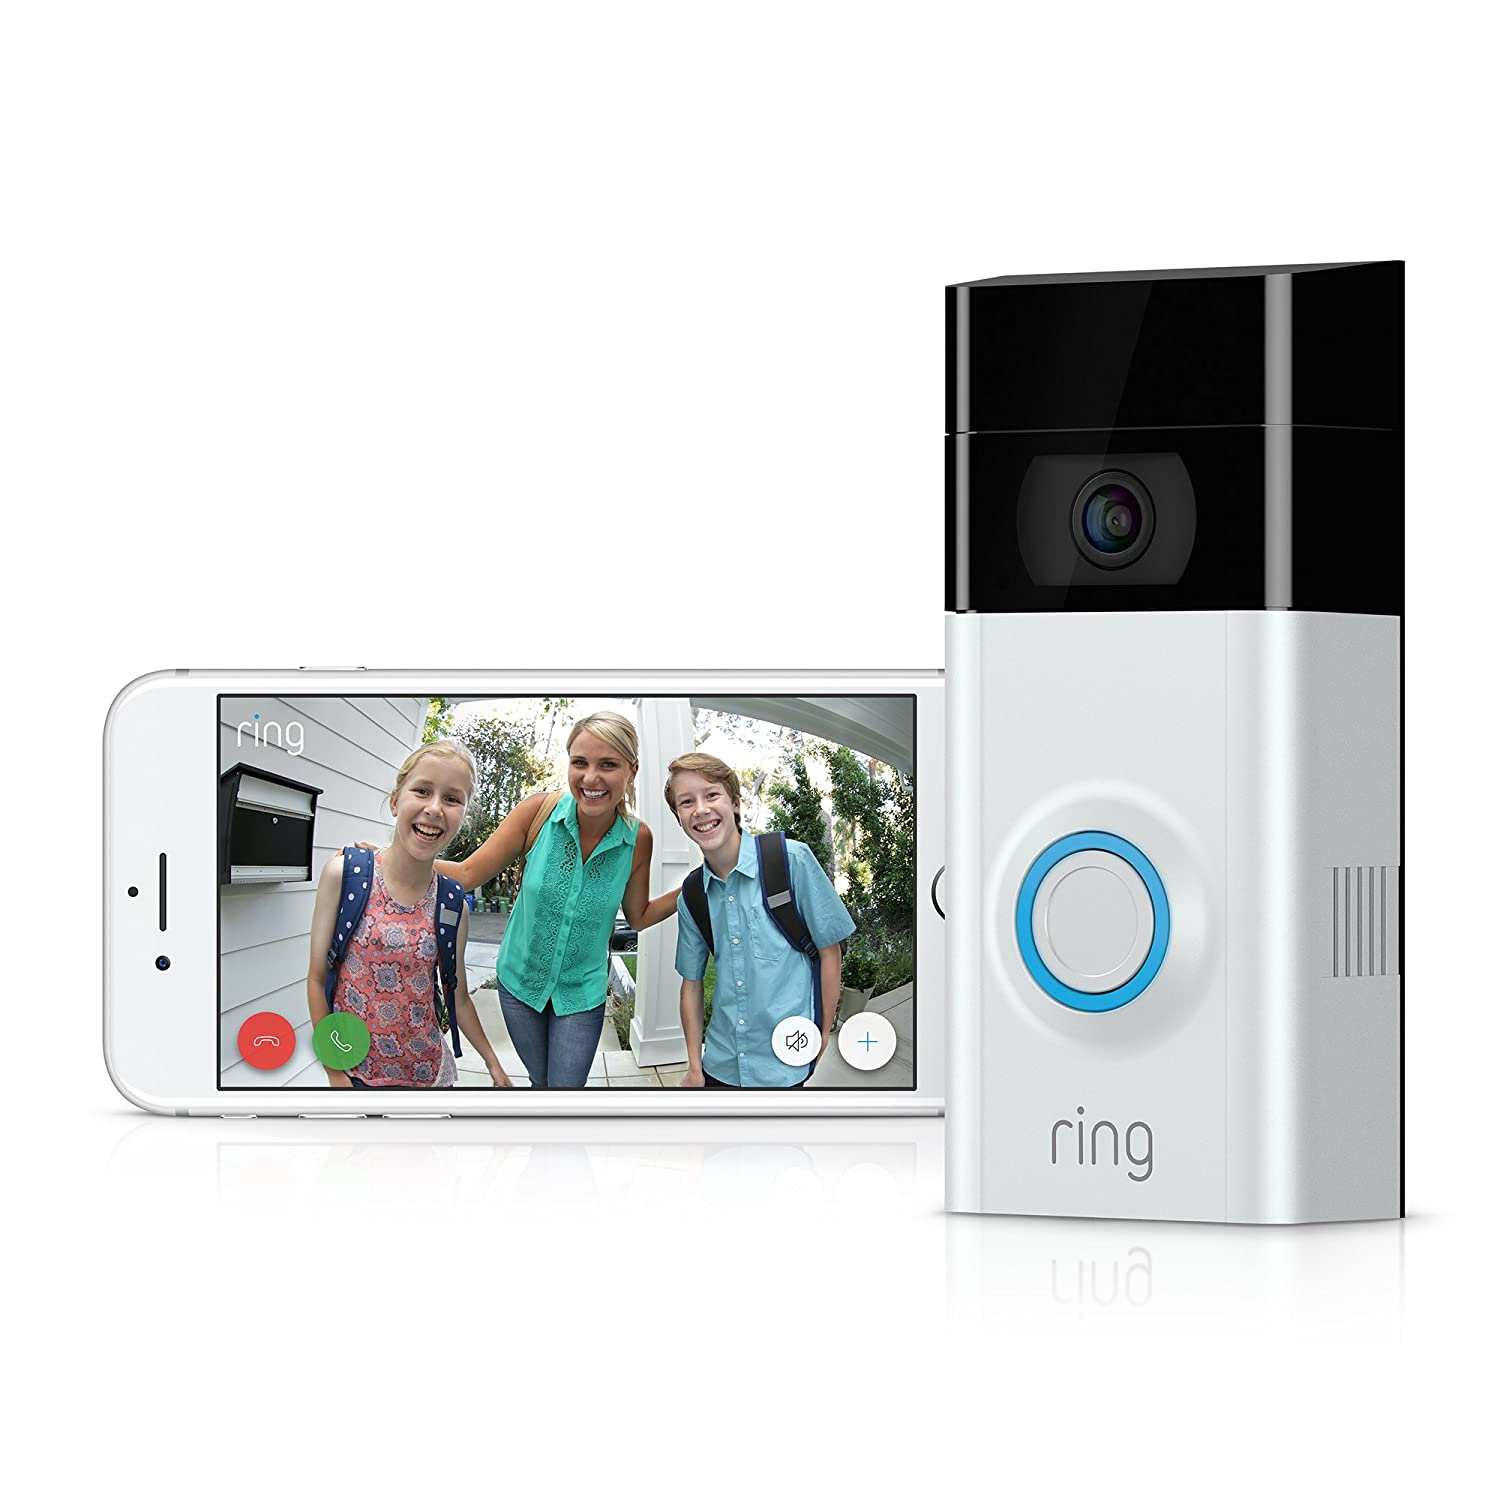 Ring Türklingel 2 IP Video Türsprechanlage WLAN für Smartphone